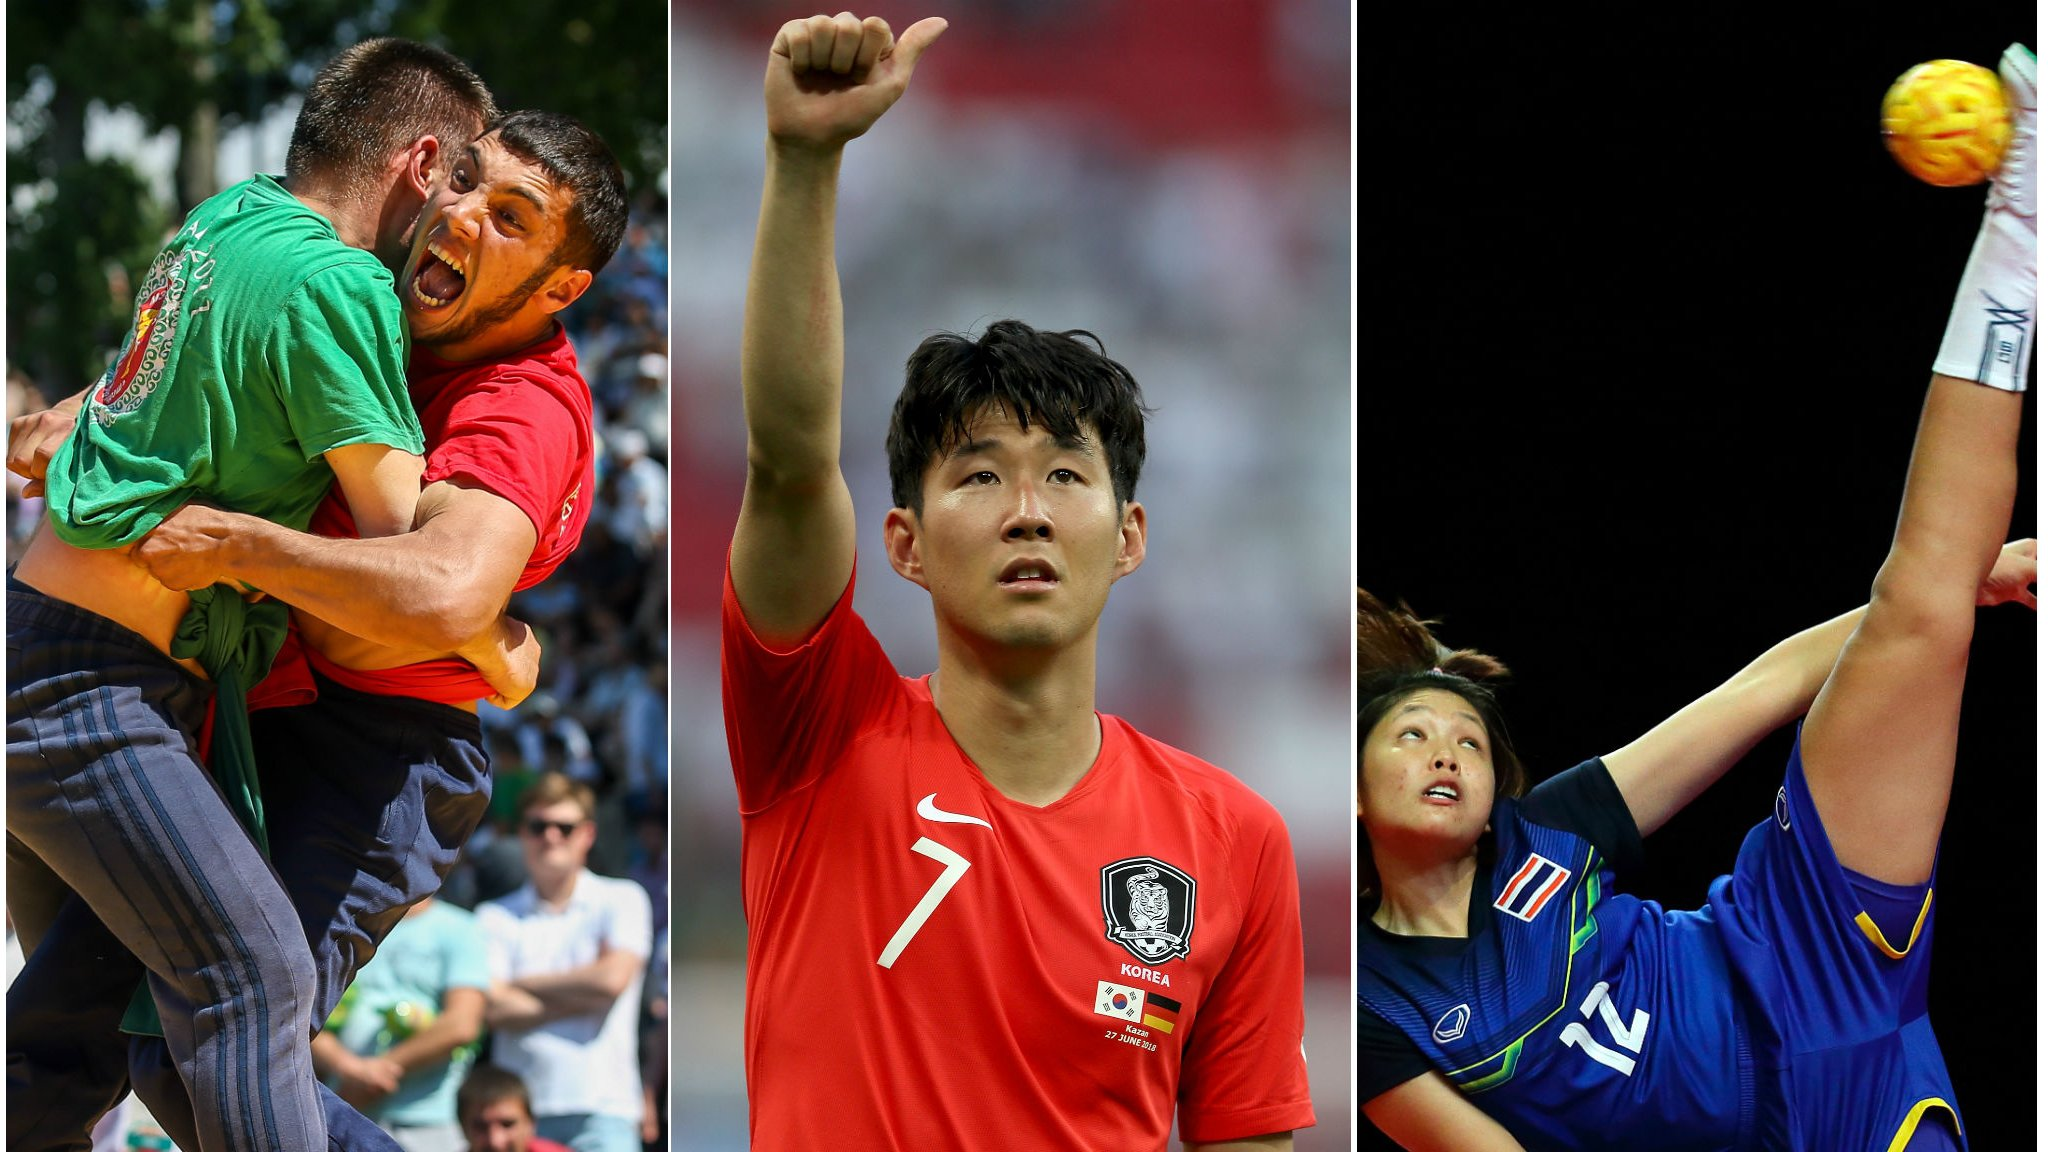 Bridge, jet-skis & ... sepak takraw? The Games that represent two-thirds of the world's population